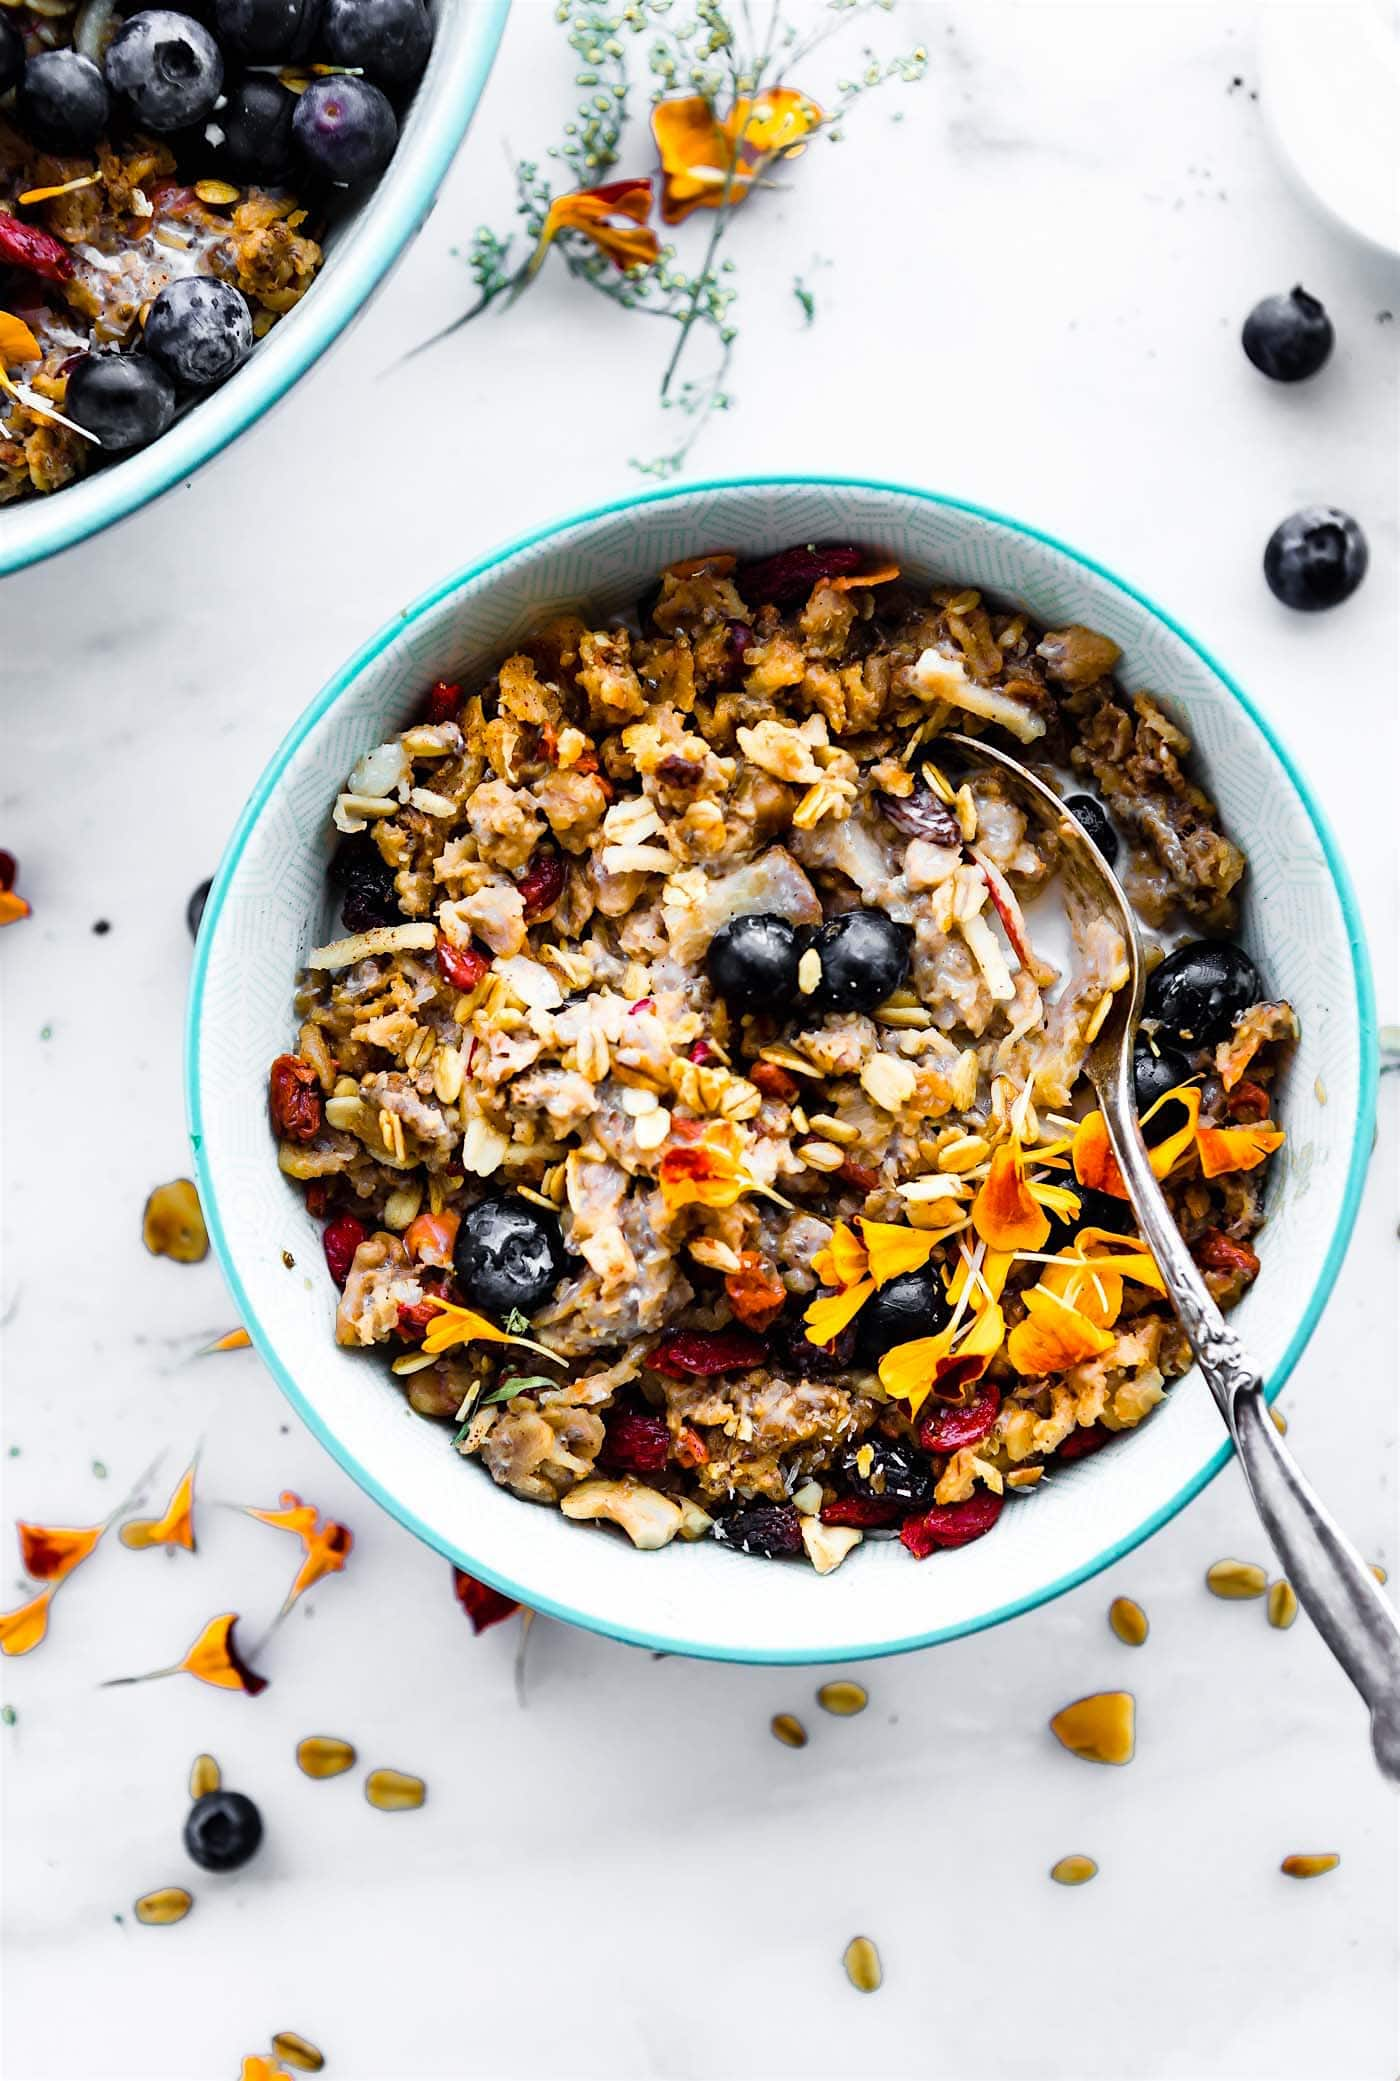 instant pot oatmeal - superfood bowls for breakfast. Healthy, vegan, gluten free.